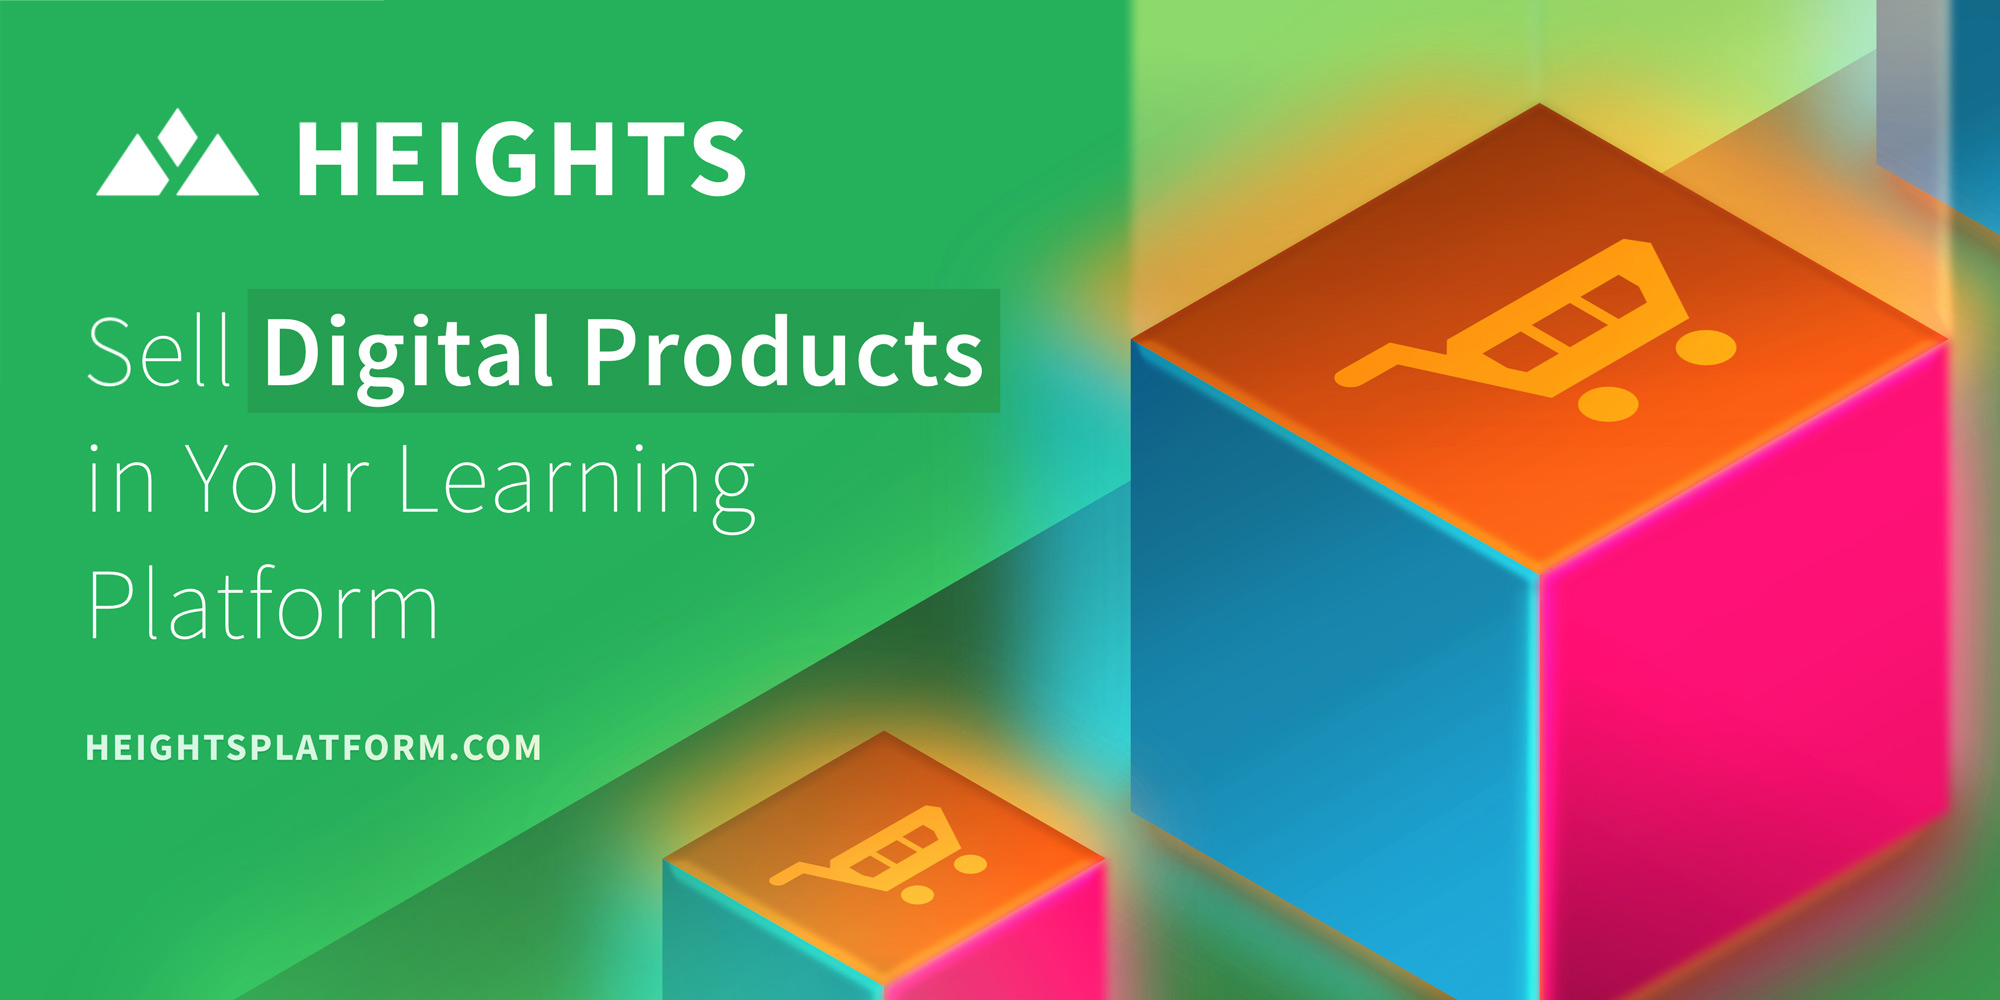 Heights Platform Selling Online Courses and Digital Products in Your Learning Program